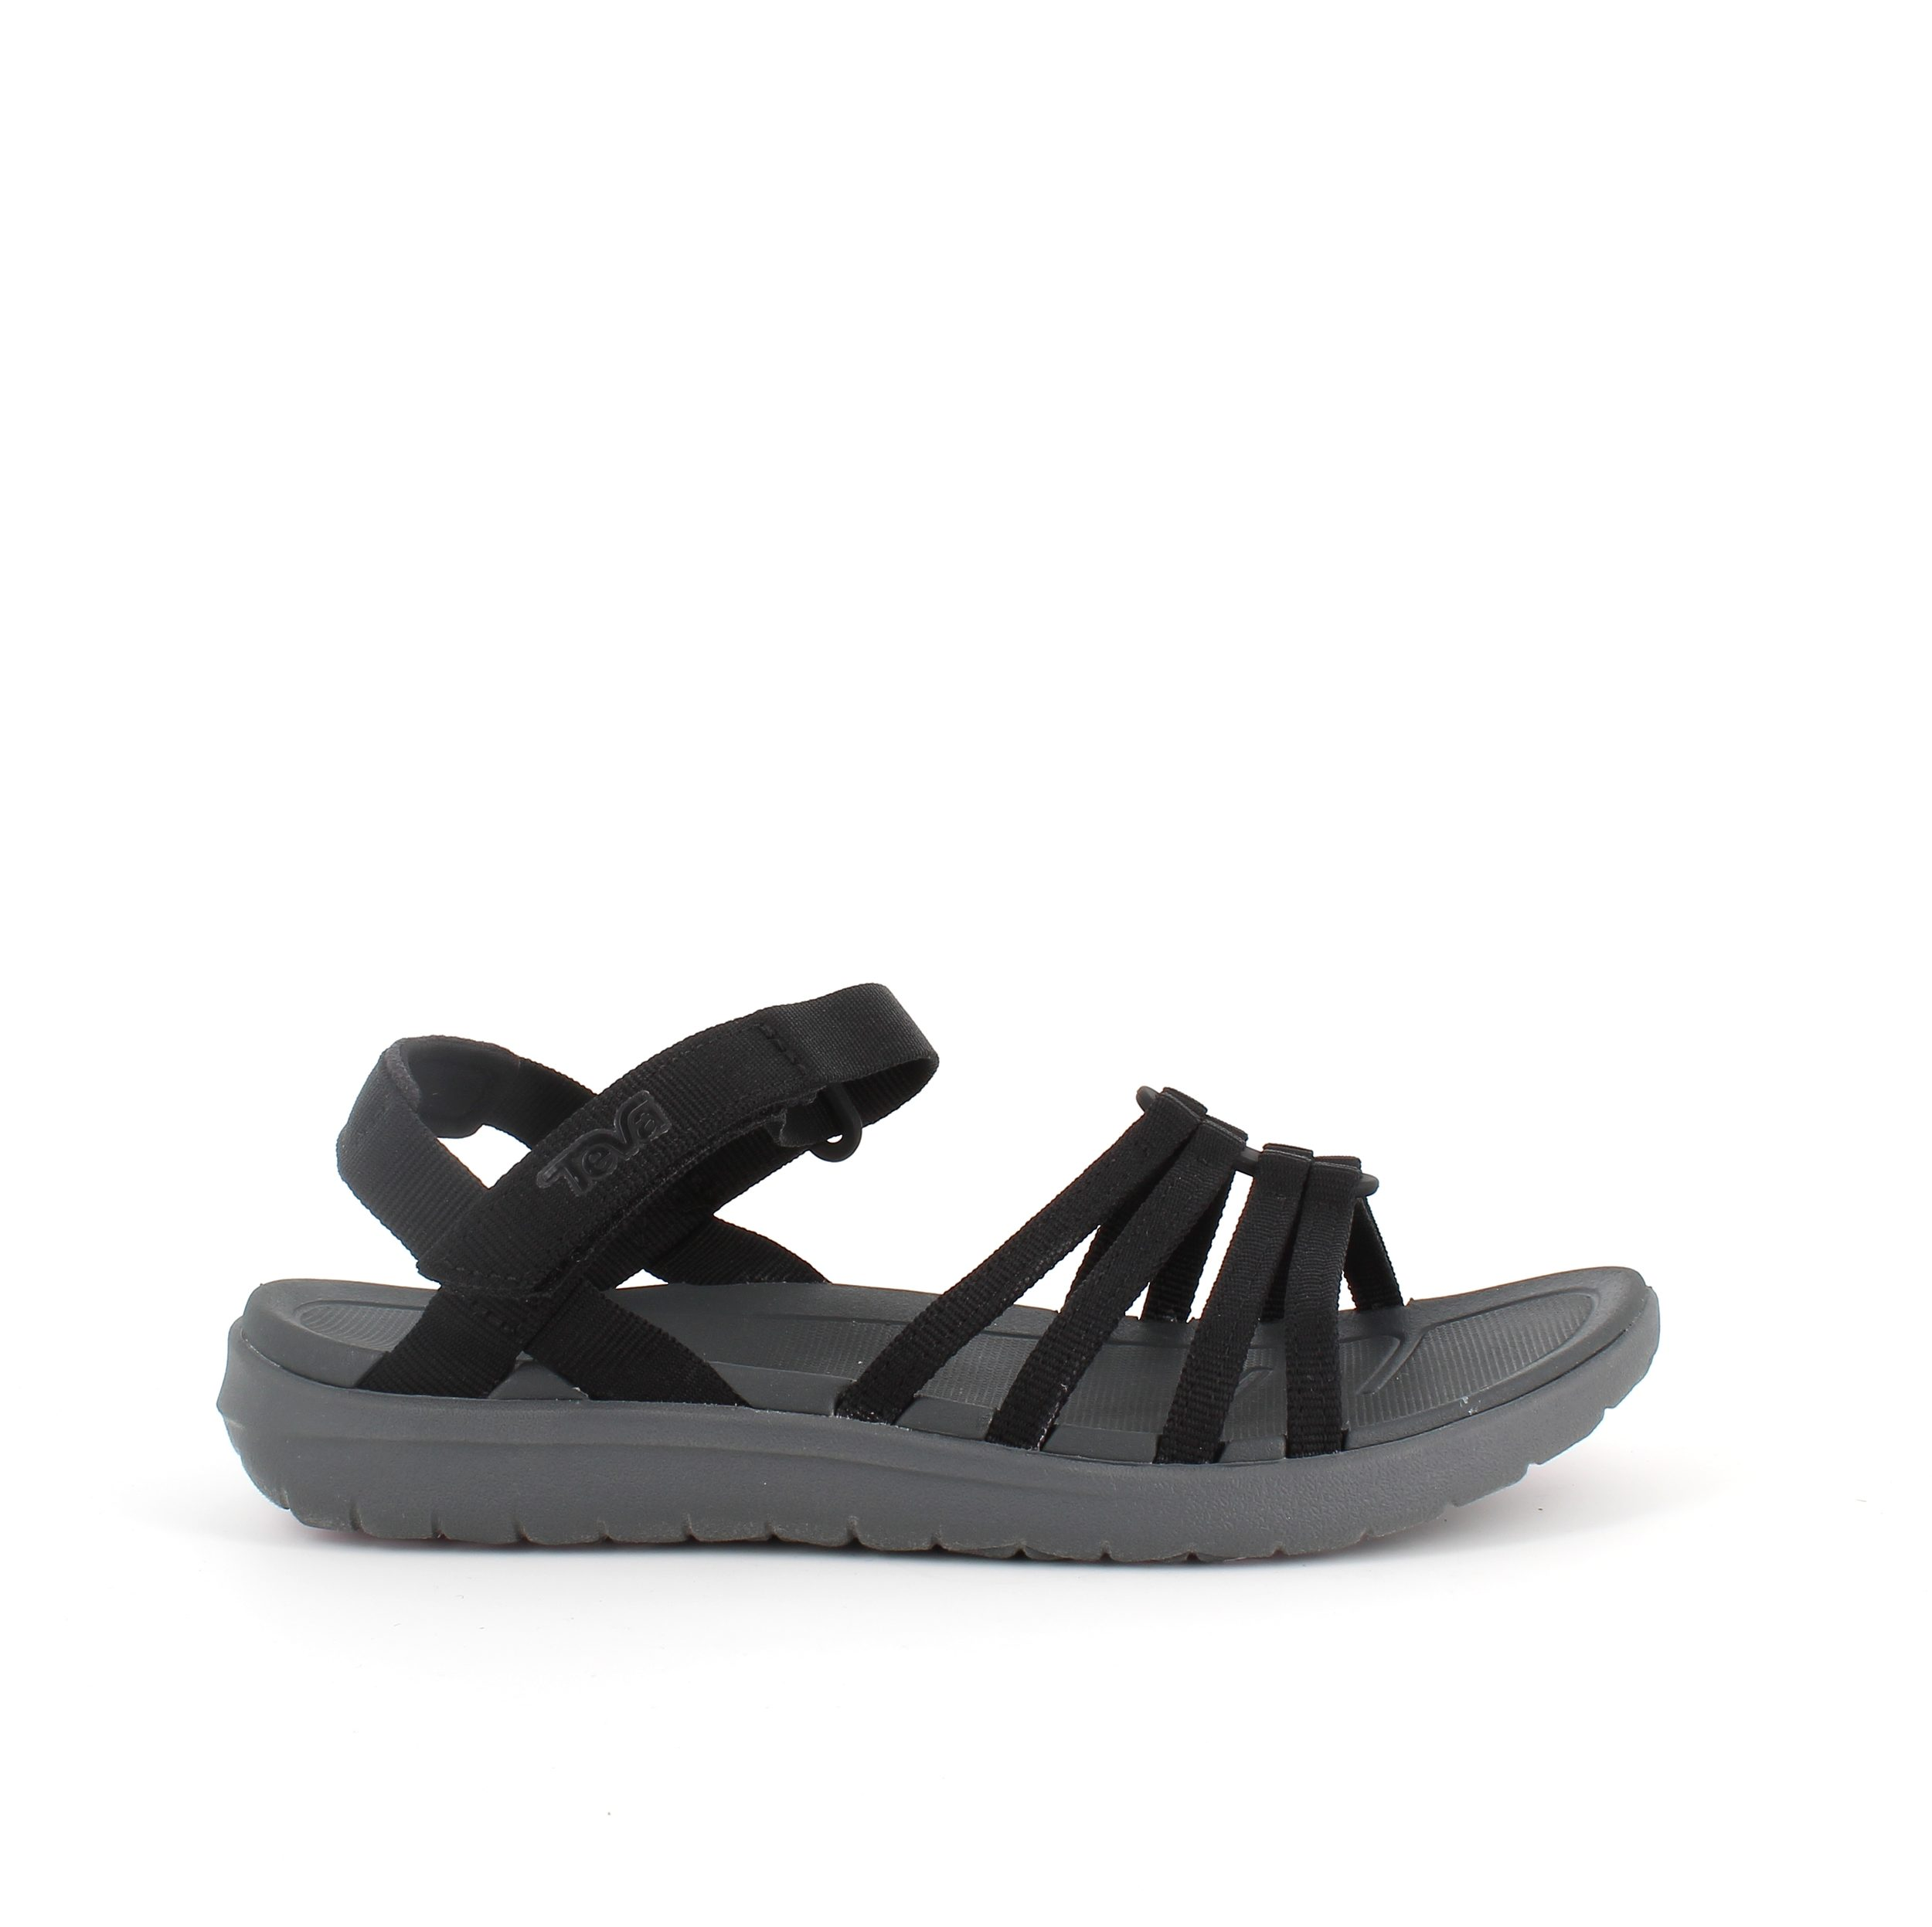 Image of   Teva Sanborn sort sandal - 39